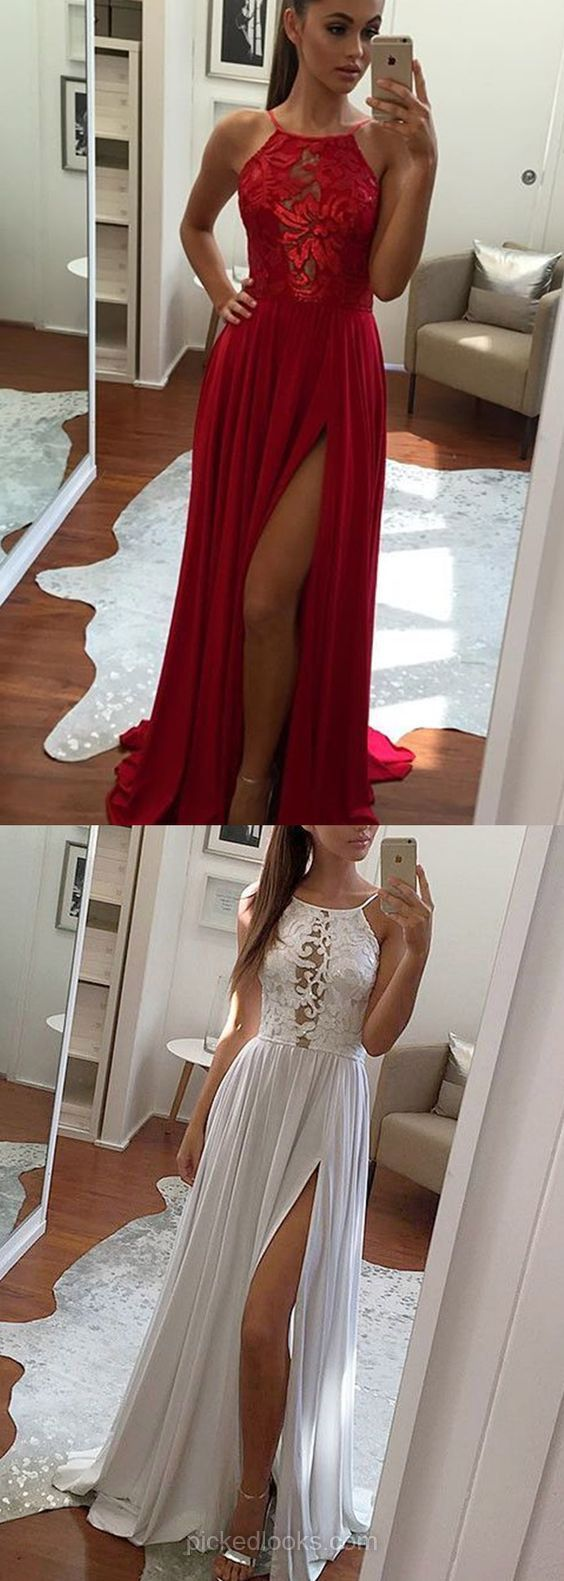 Long ball dresses red lace prom dresses aline evening